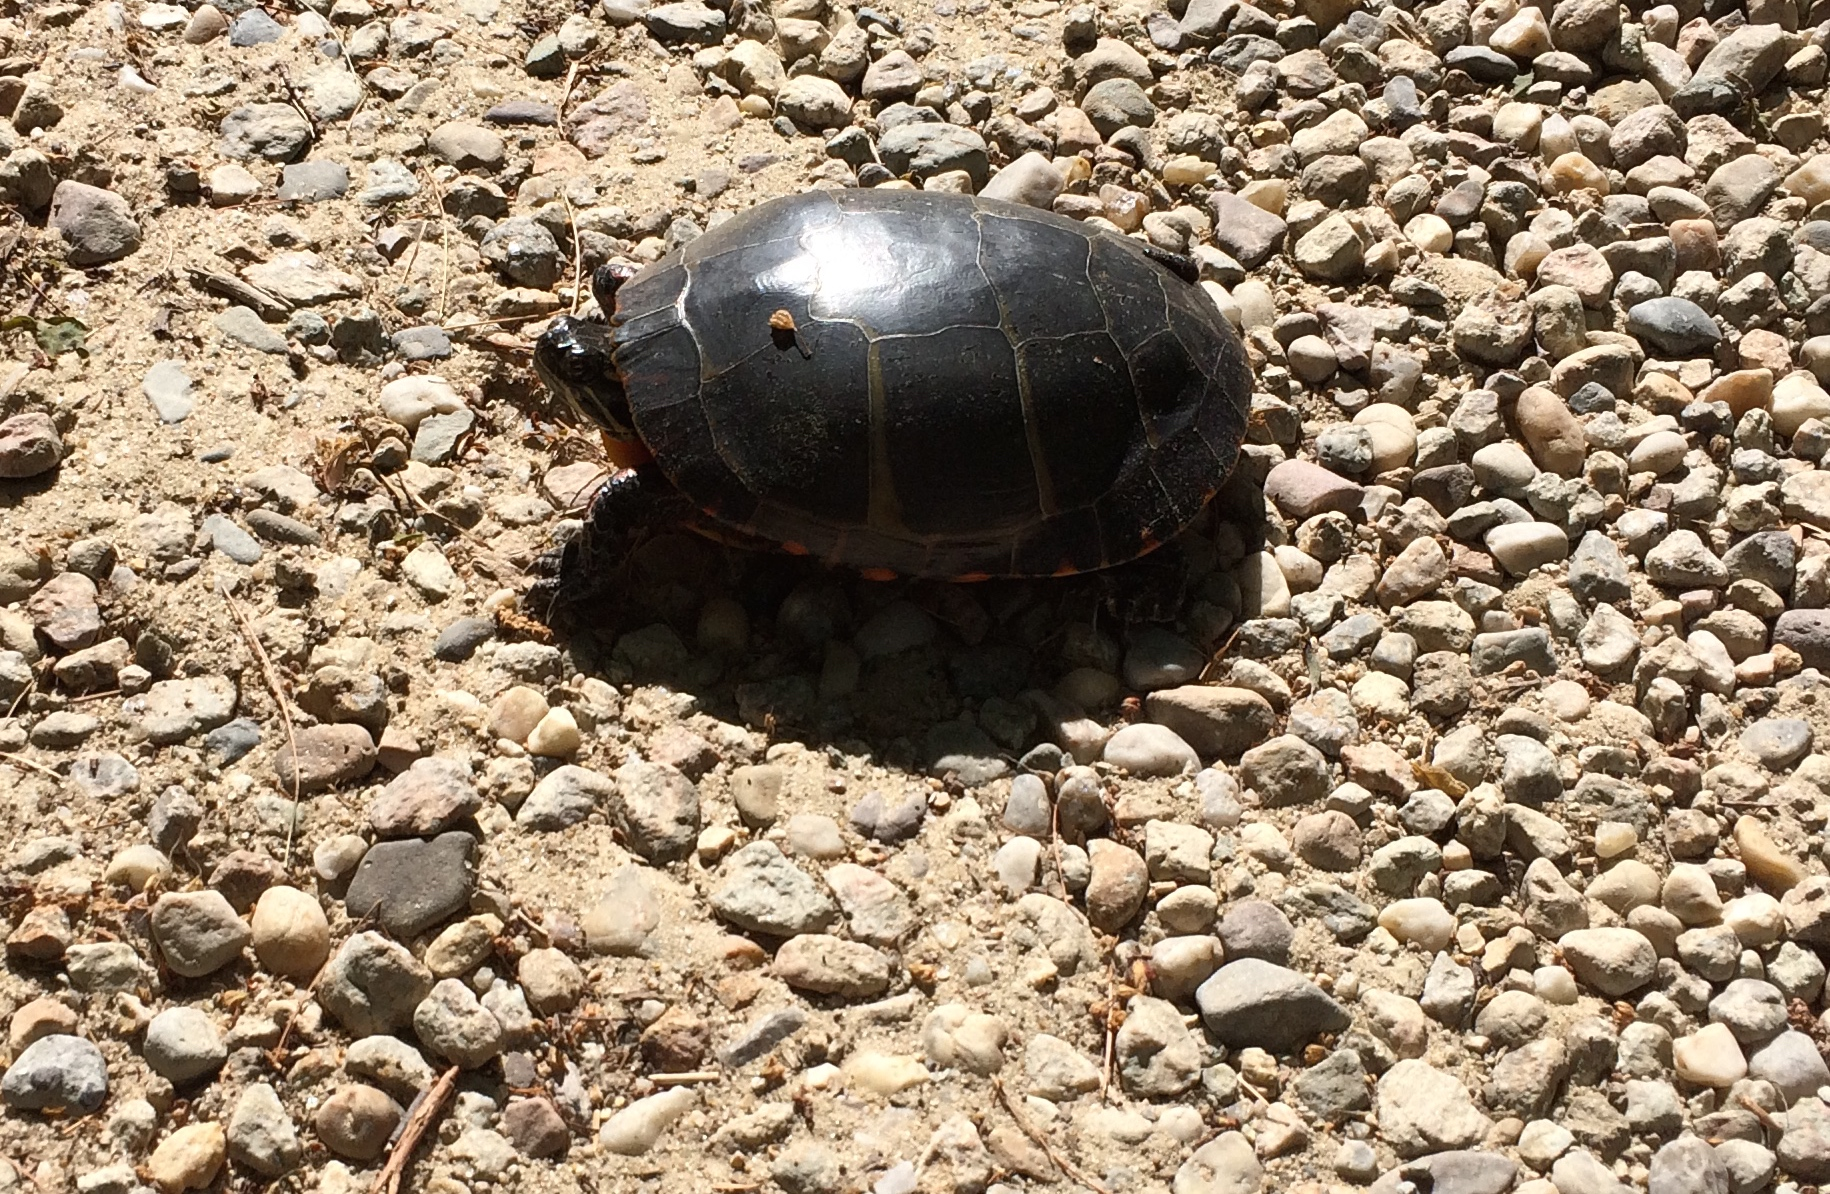 June 3, 2015 | Painted Turtle Crossing the Road